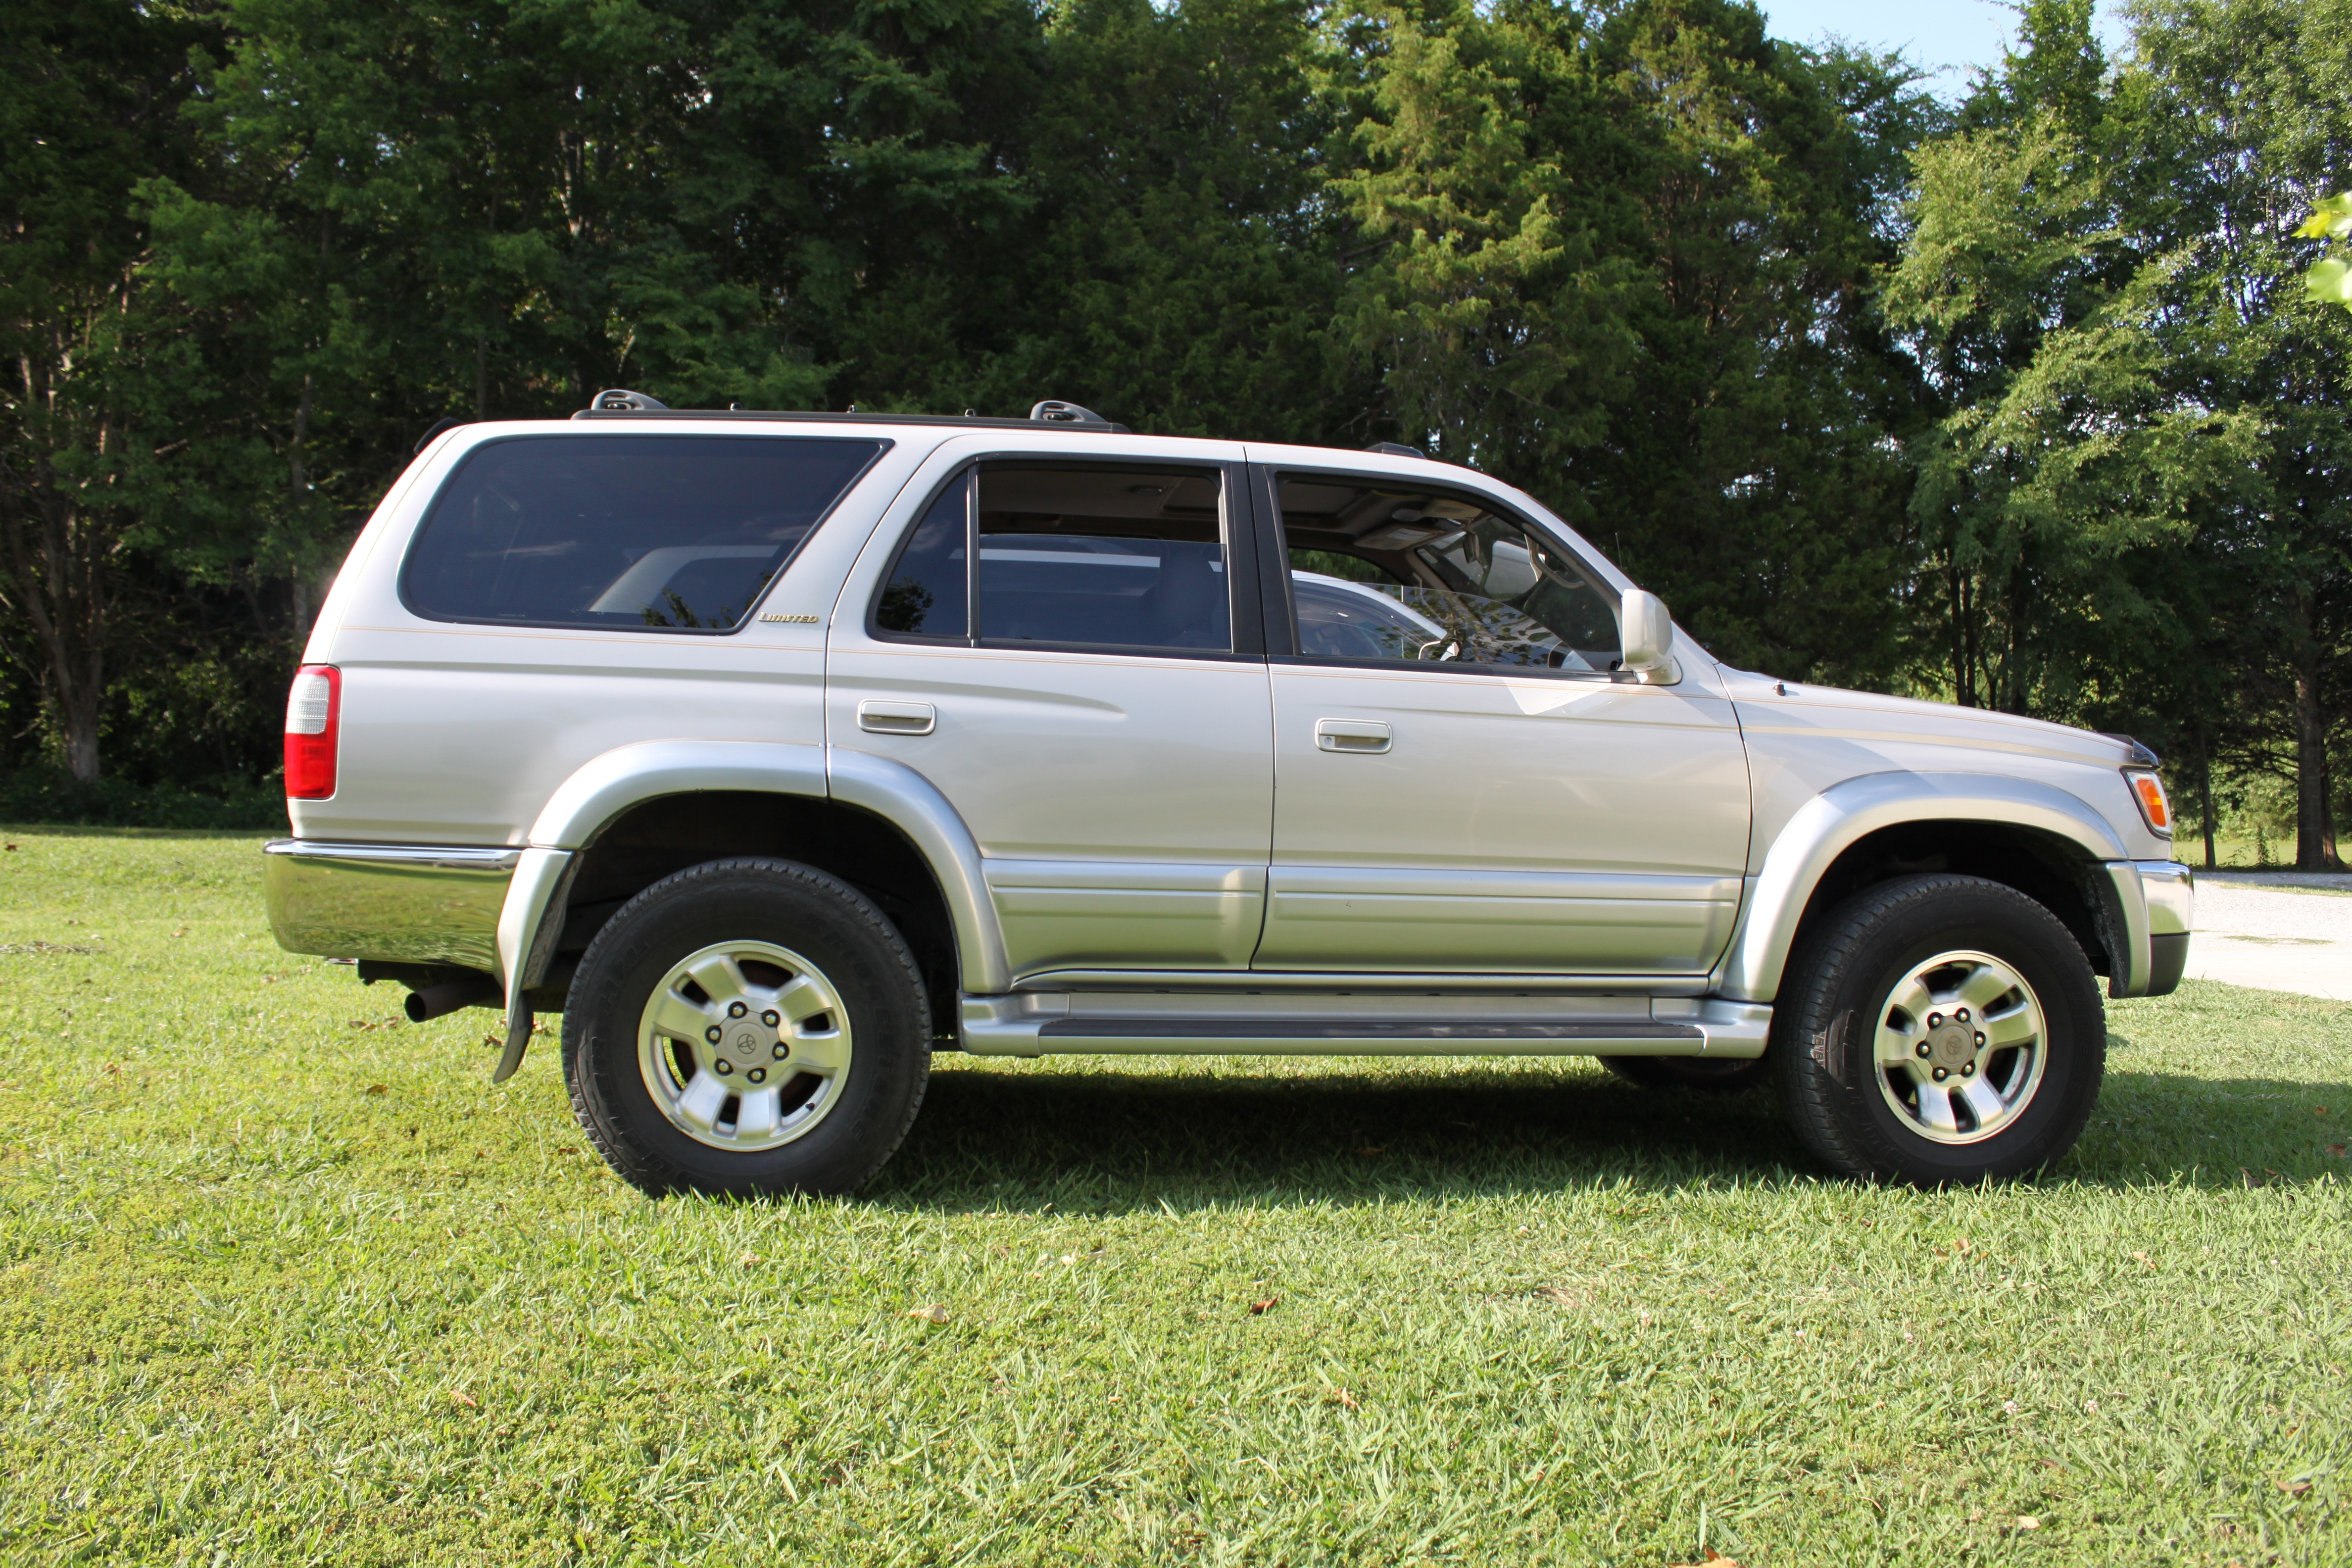 stc0006 1997 toyota 4runnerlimited sport utility 4d specs photos modification info at cardomain http www cardomain com ride 3939101 1997 toyota 4runner limited sport utility 4d